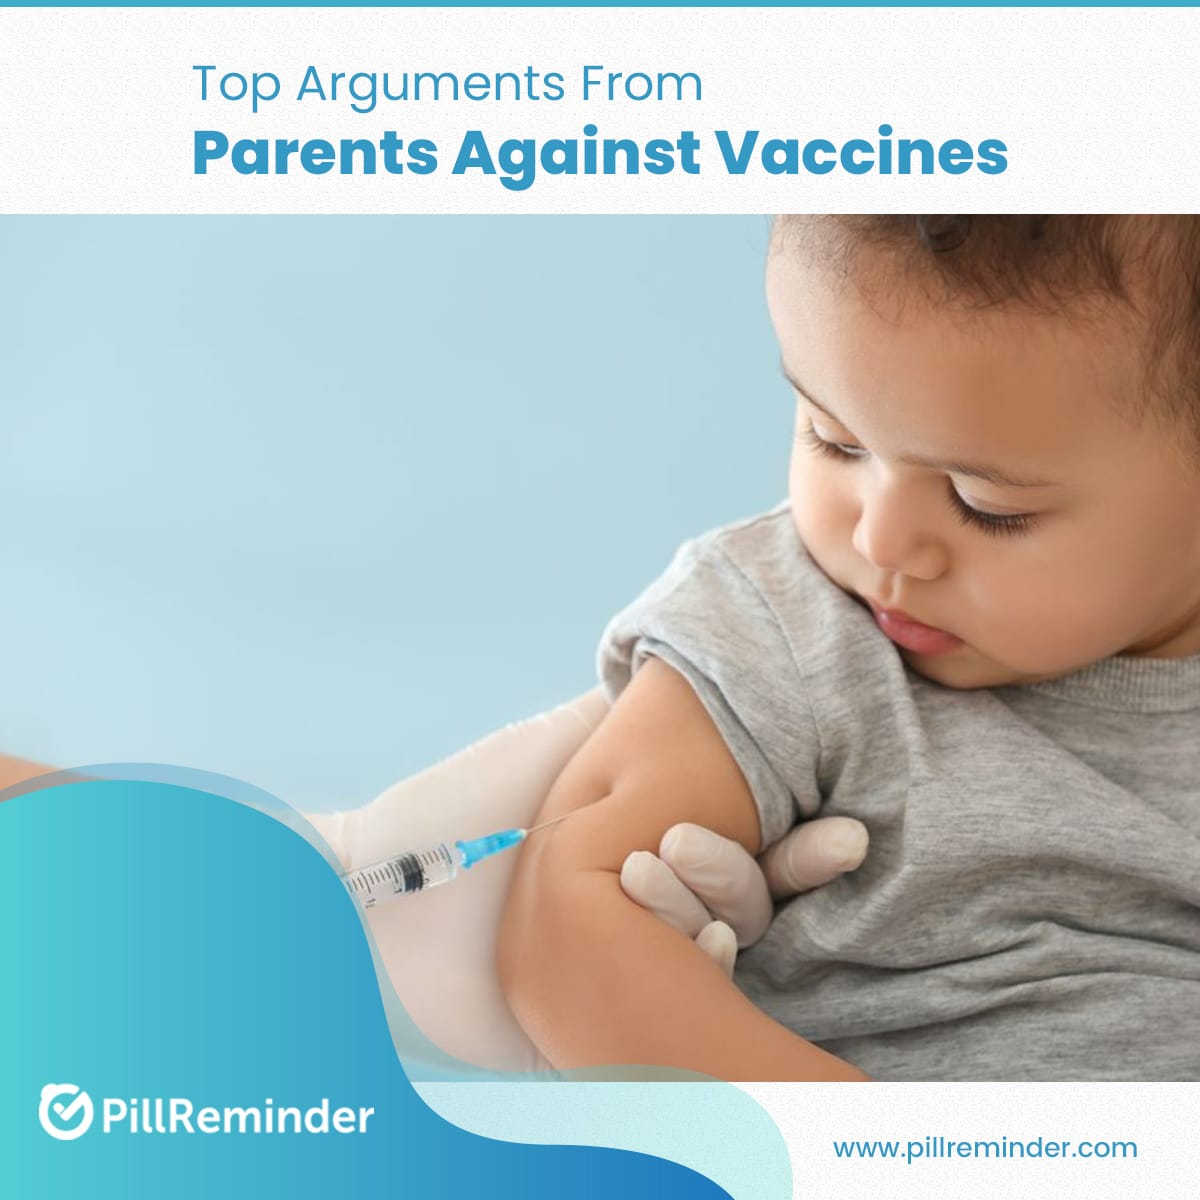 Top Arguments from Parents against Vaccines